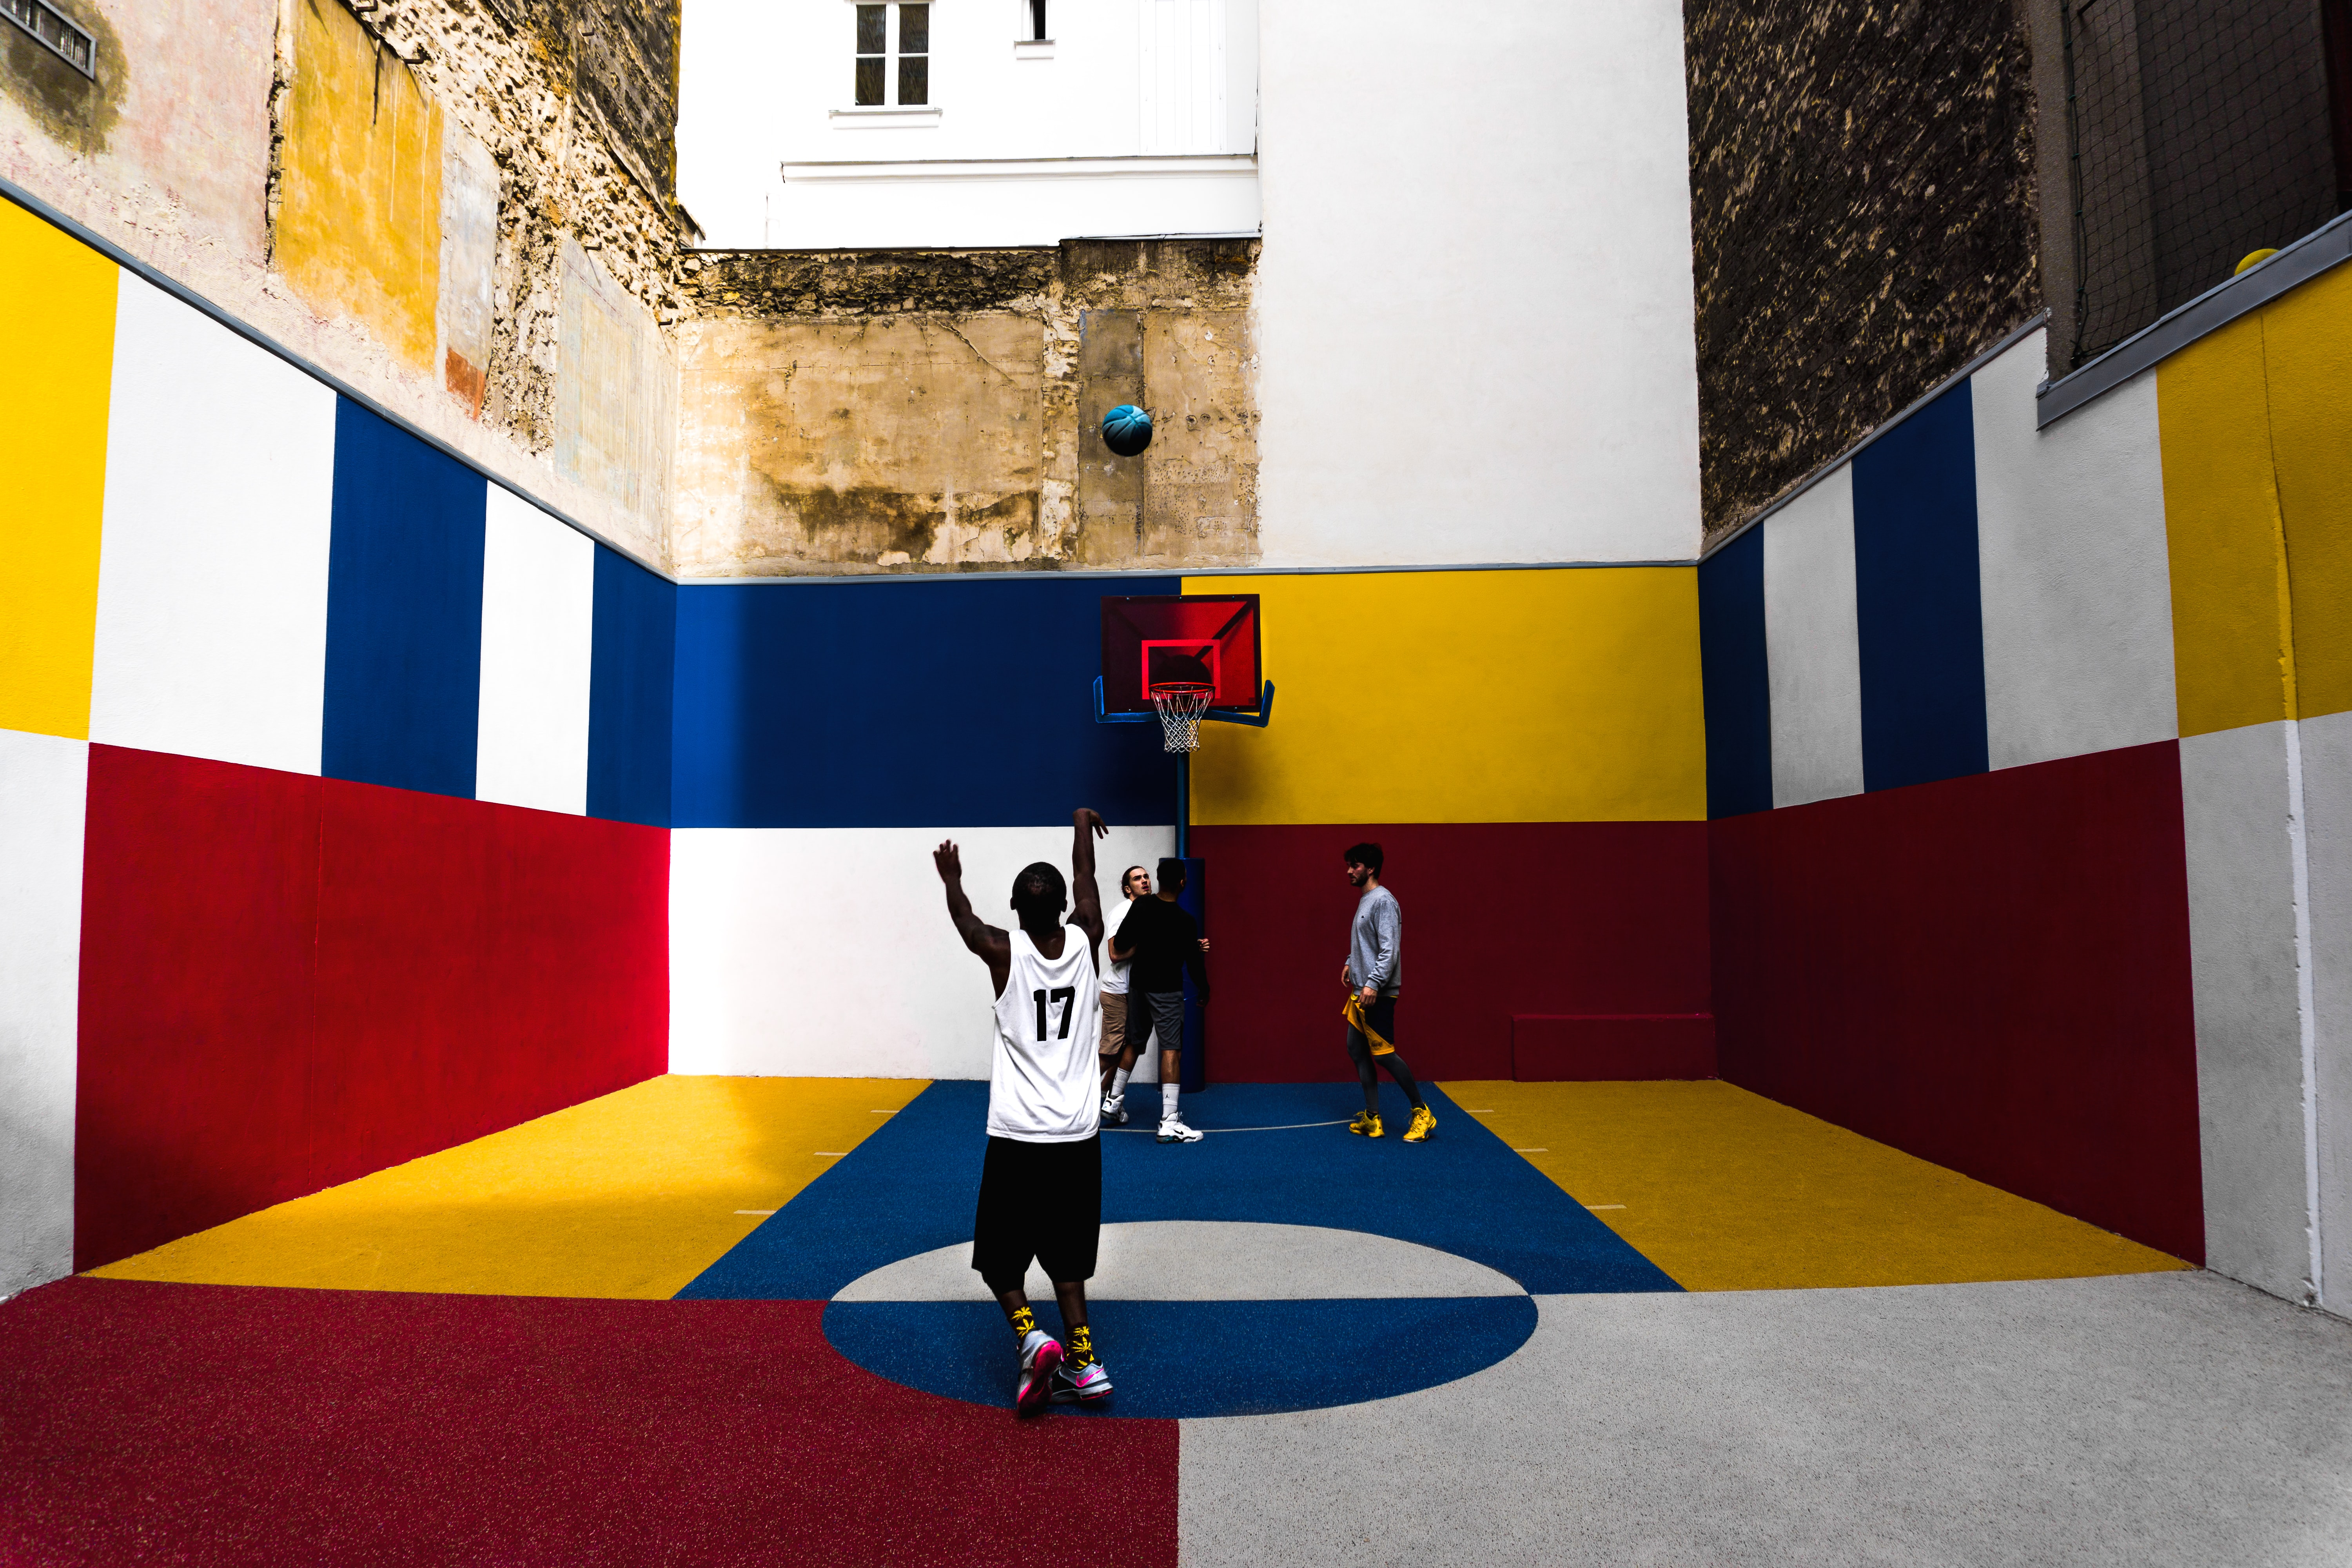 man playing basketball inside multicolored court